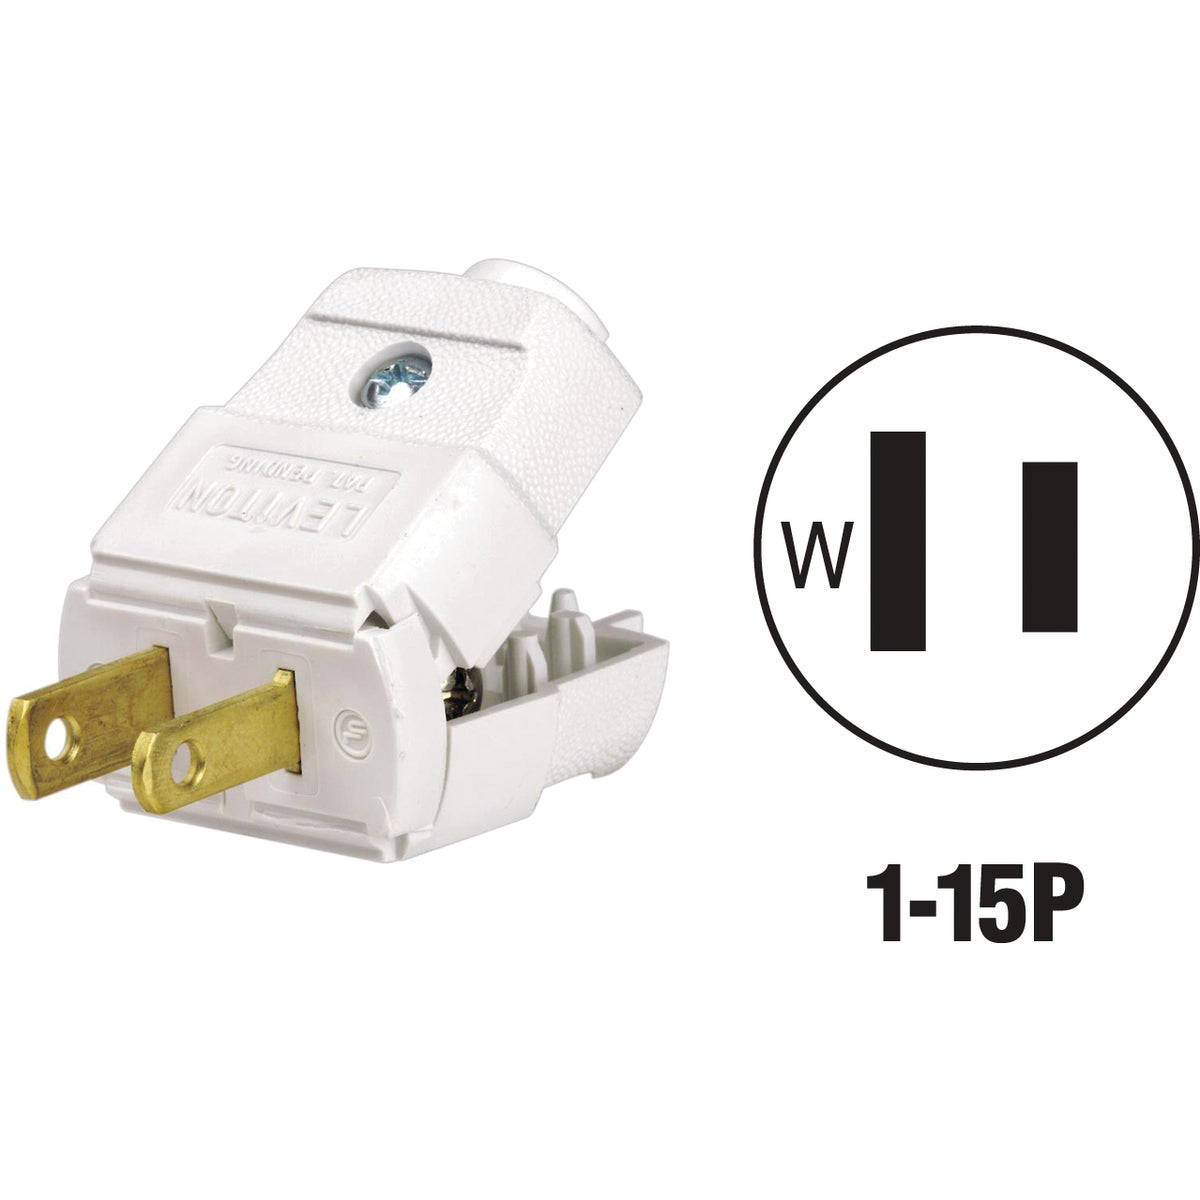 WHT CORD PLUG - 016001010WP by Leviton Mfg Co